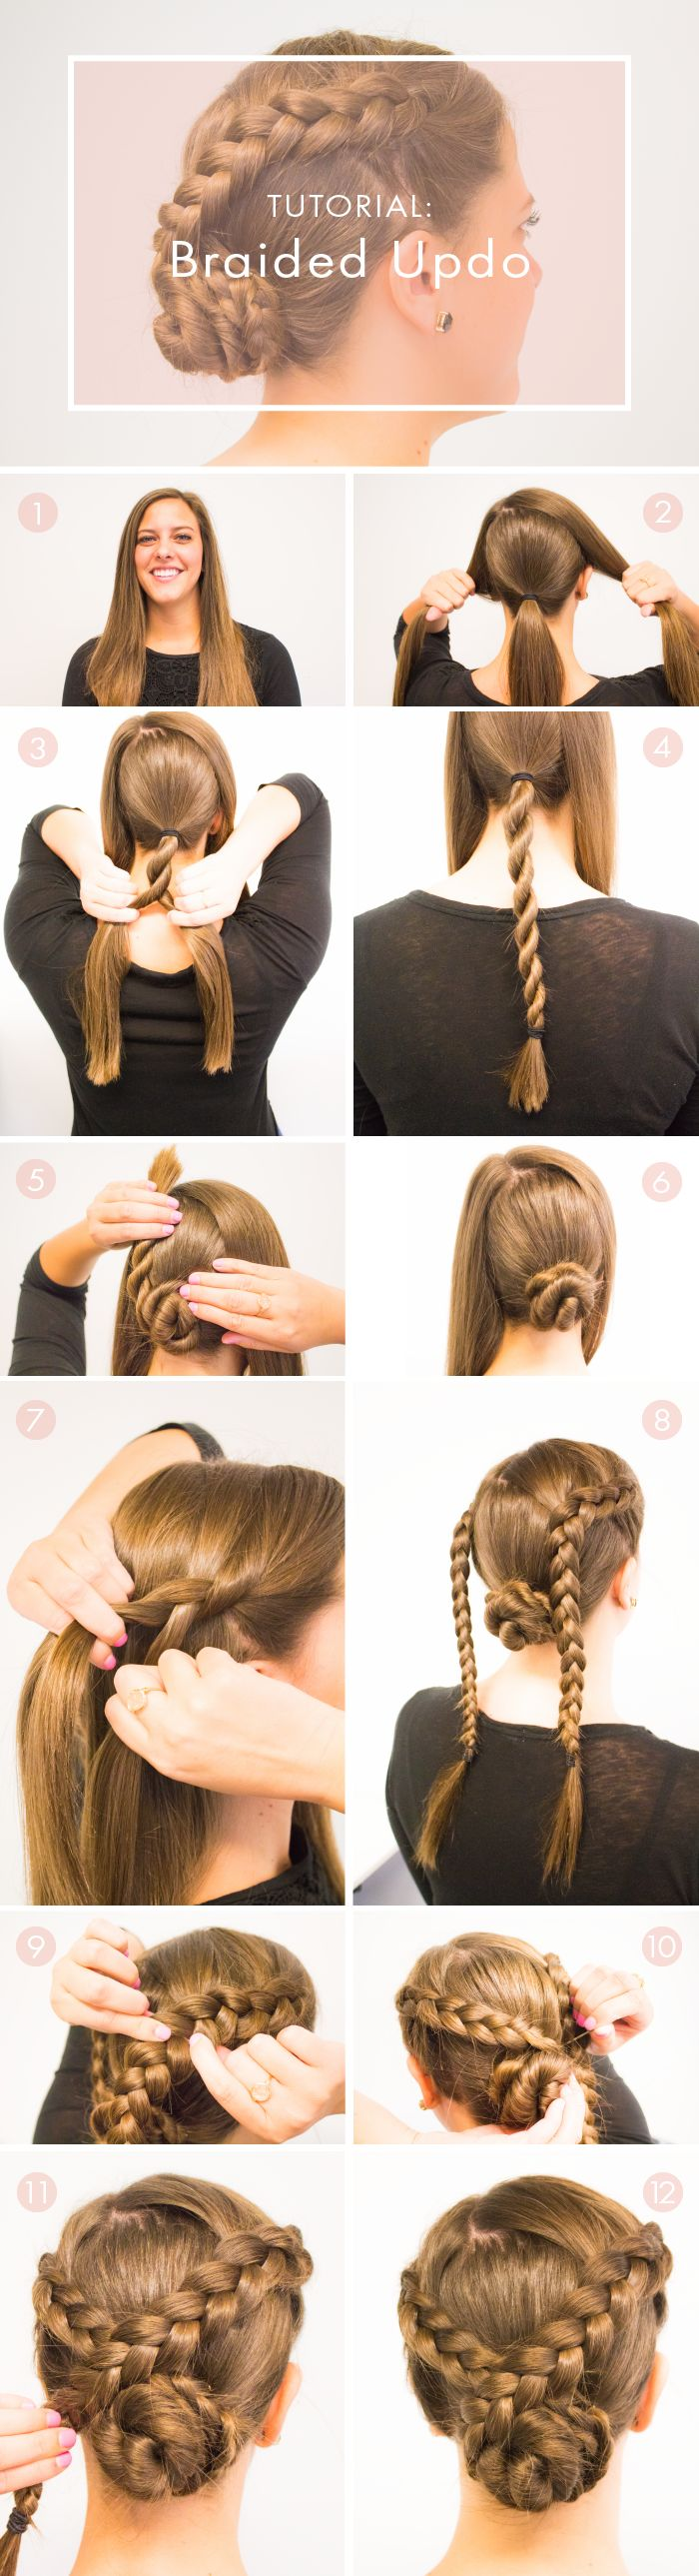 Ha Hair Accessories For Apostolic Long Hair - The braided updo perfect for prom or any formal occasion this tutorial will walk